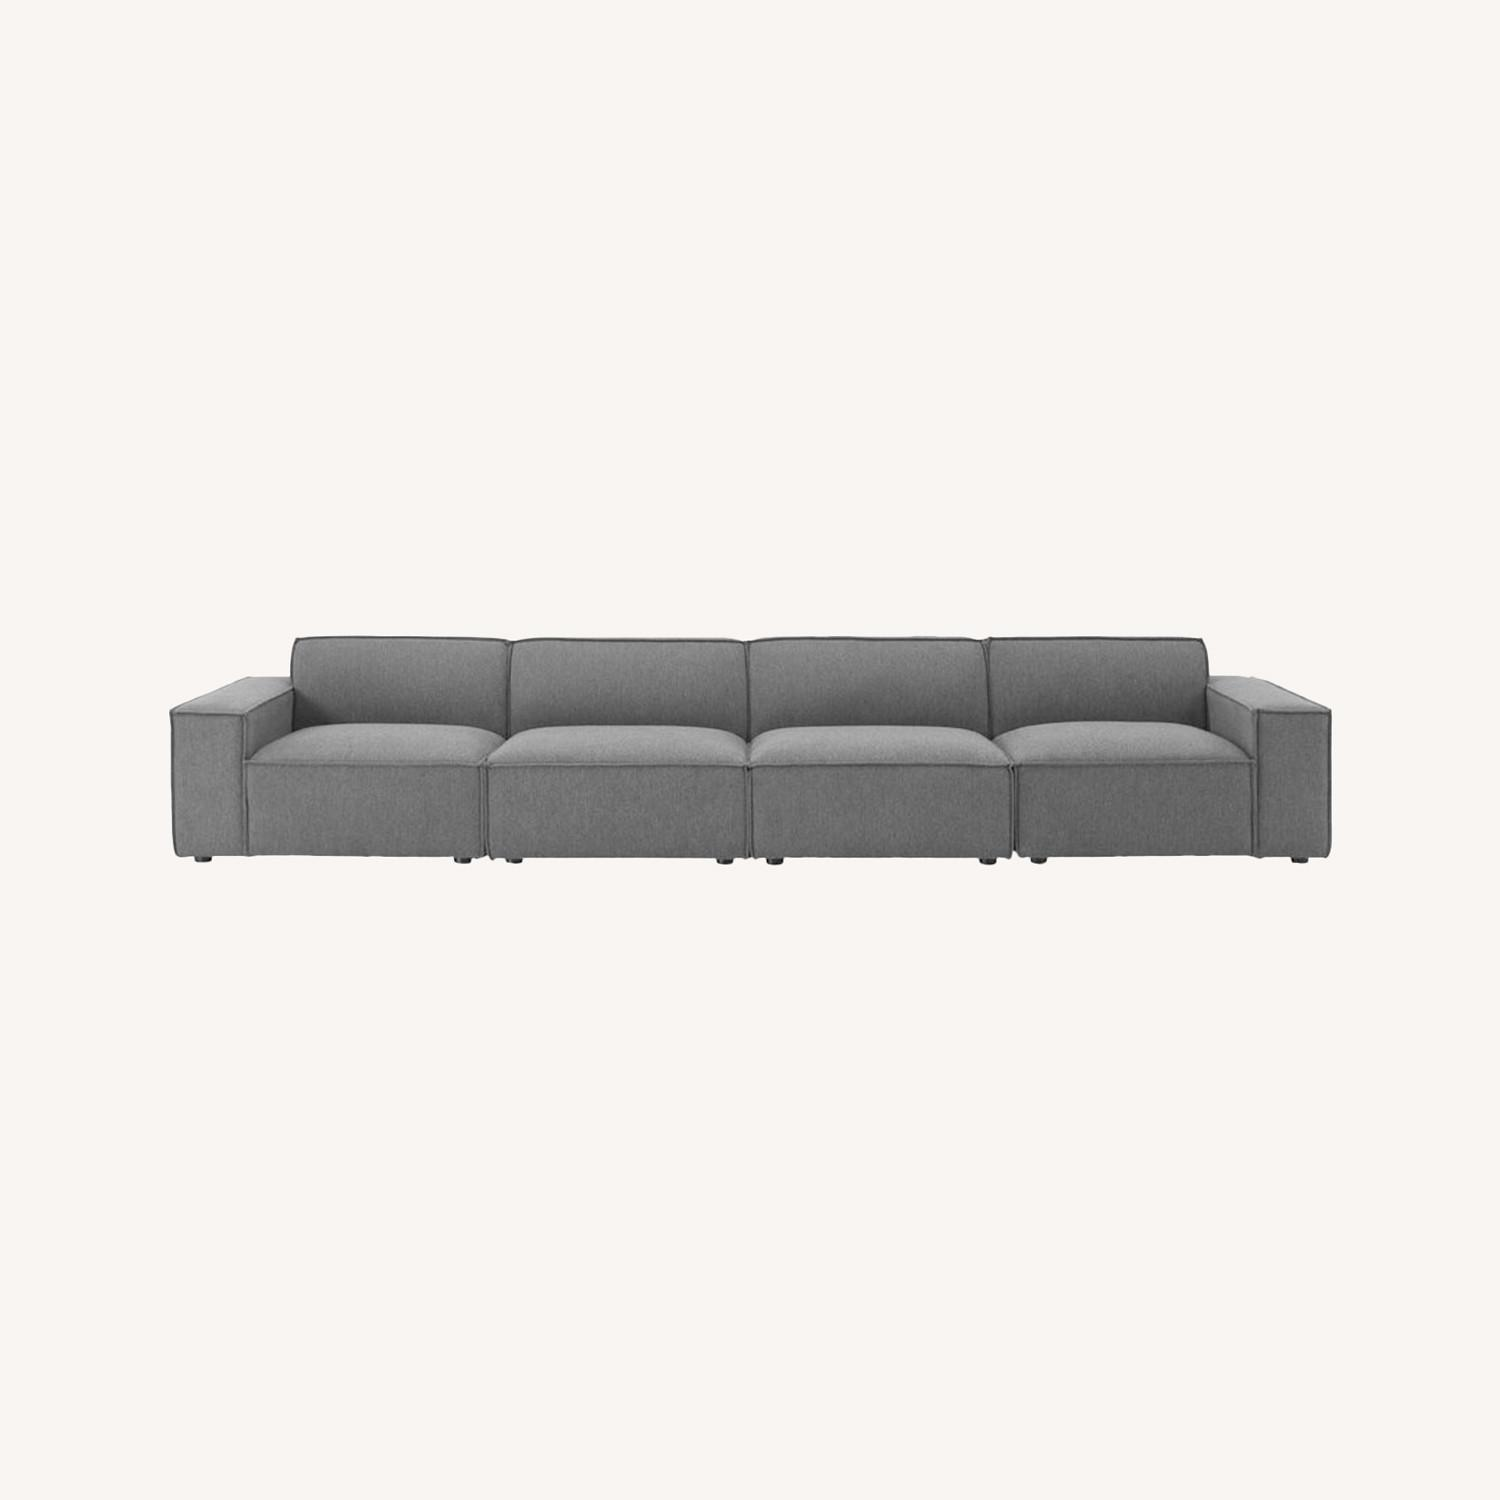 4-Piece Sectional Sofa In Charcoal Upholstery - image-11